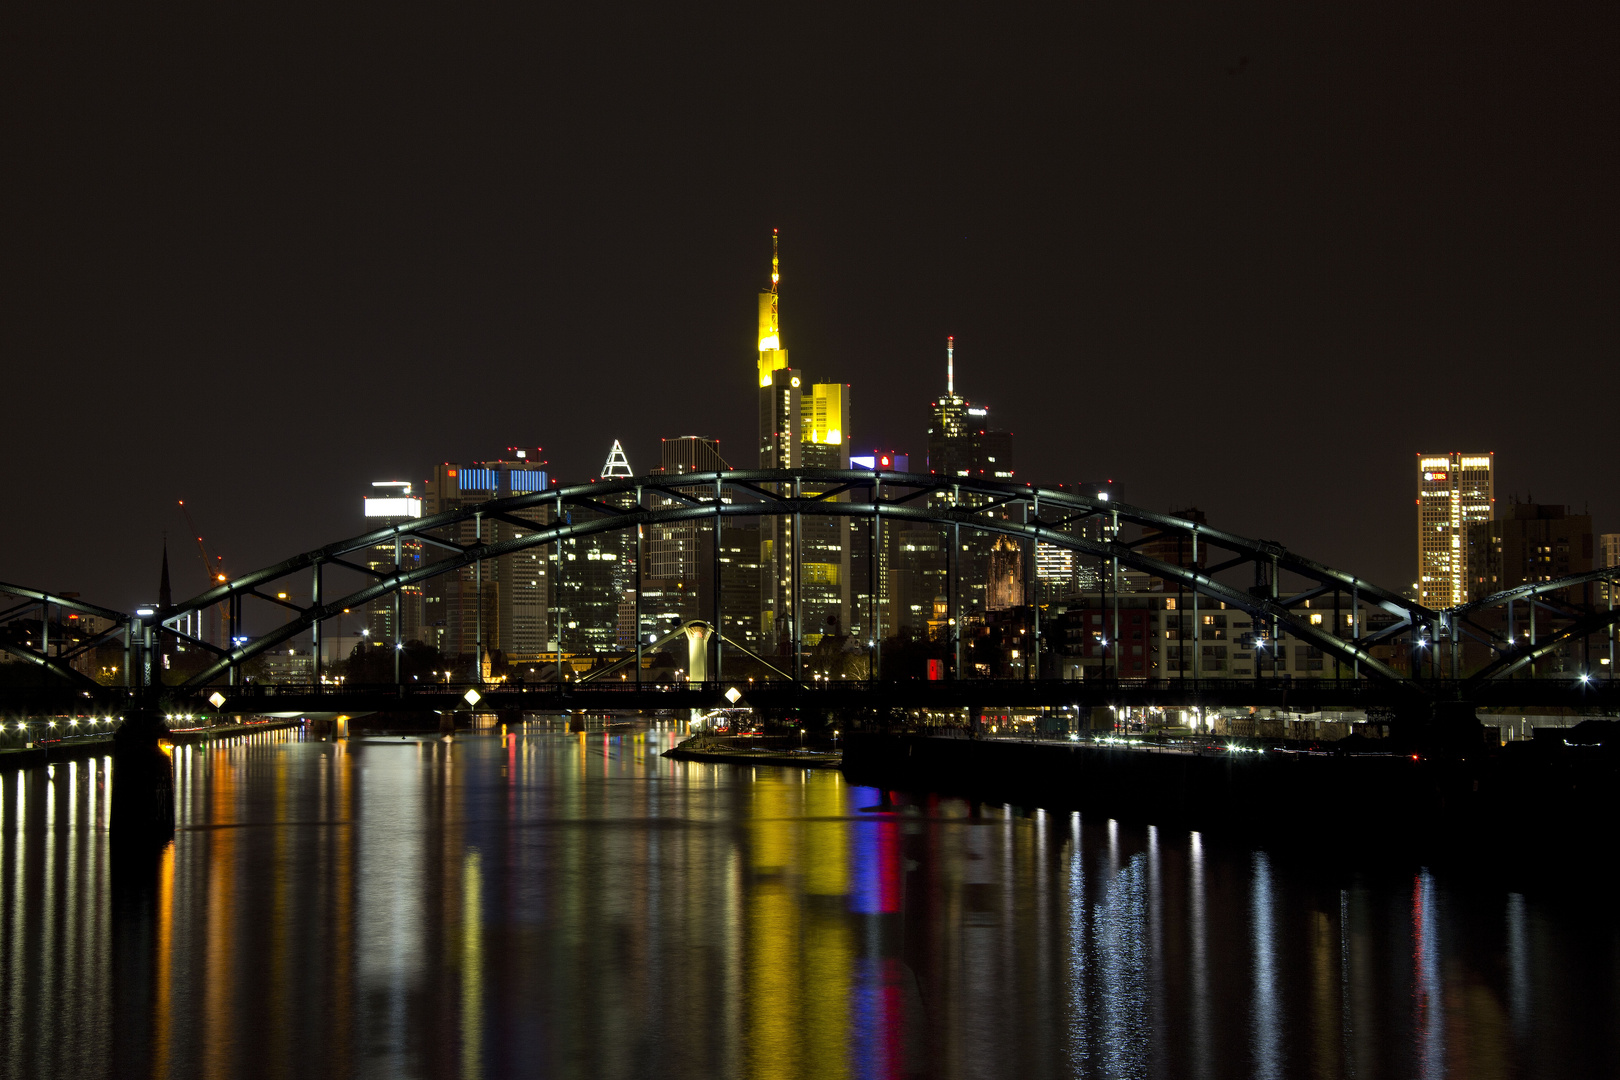 Skyline Frankfurt colored by night